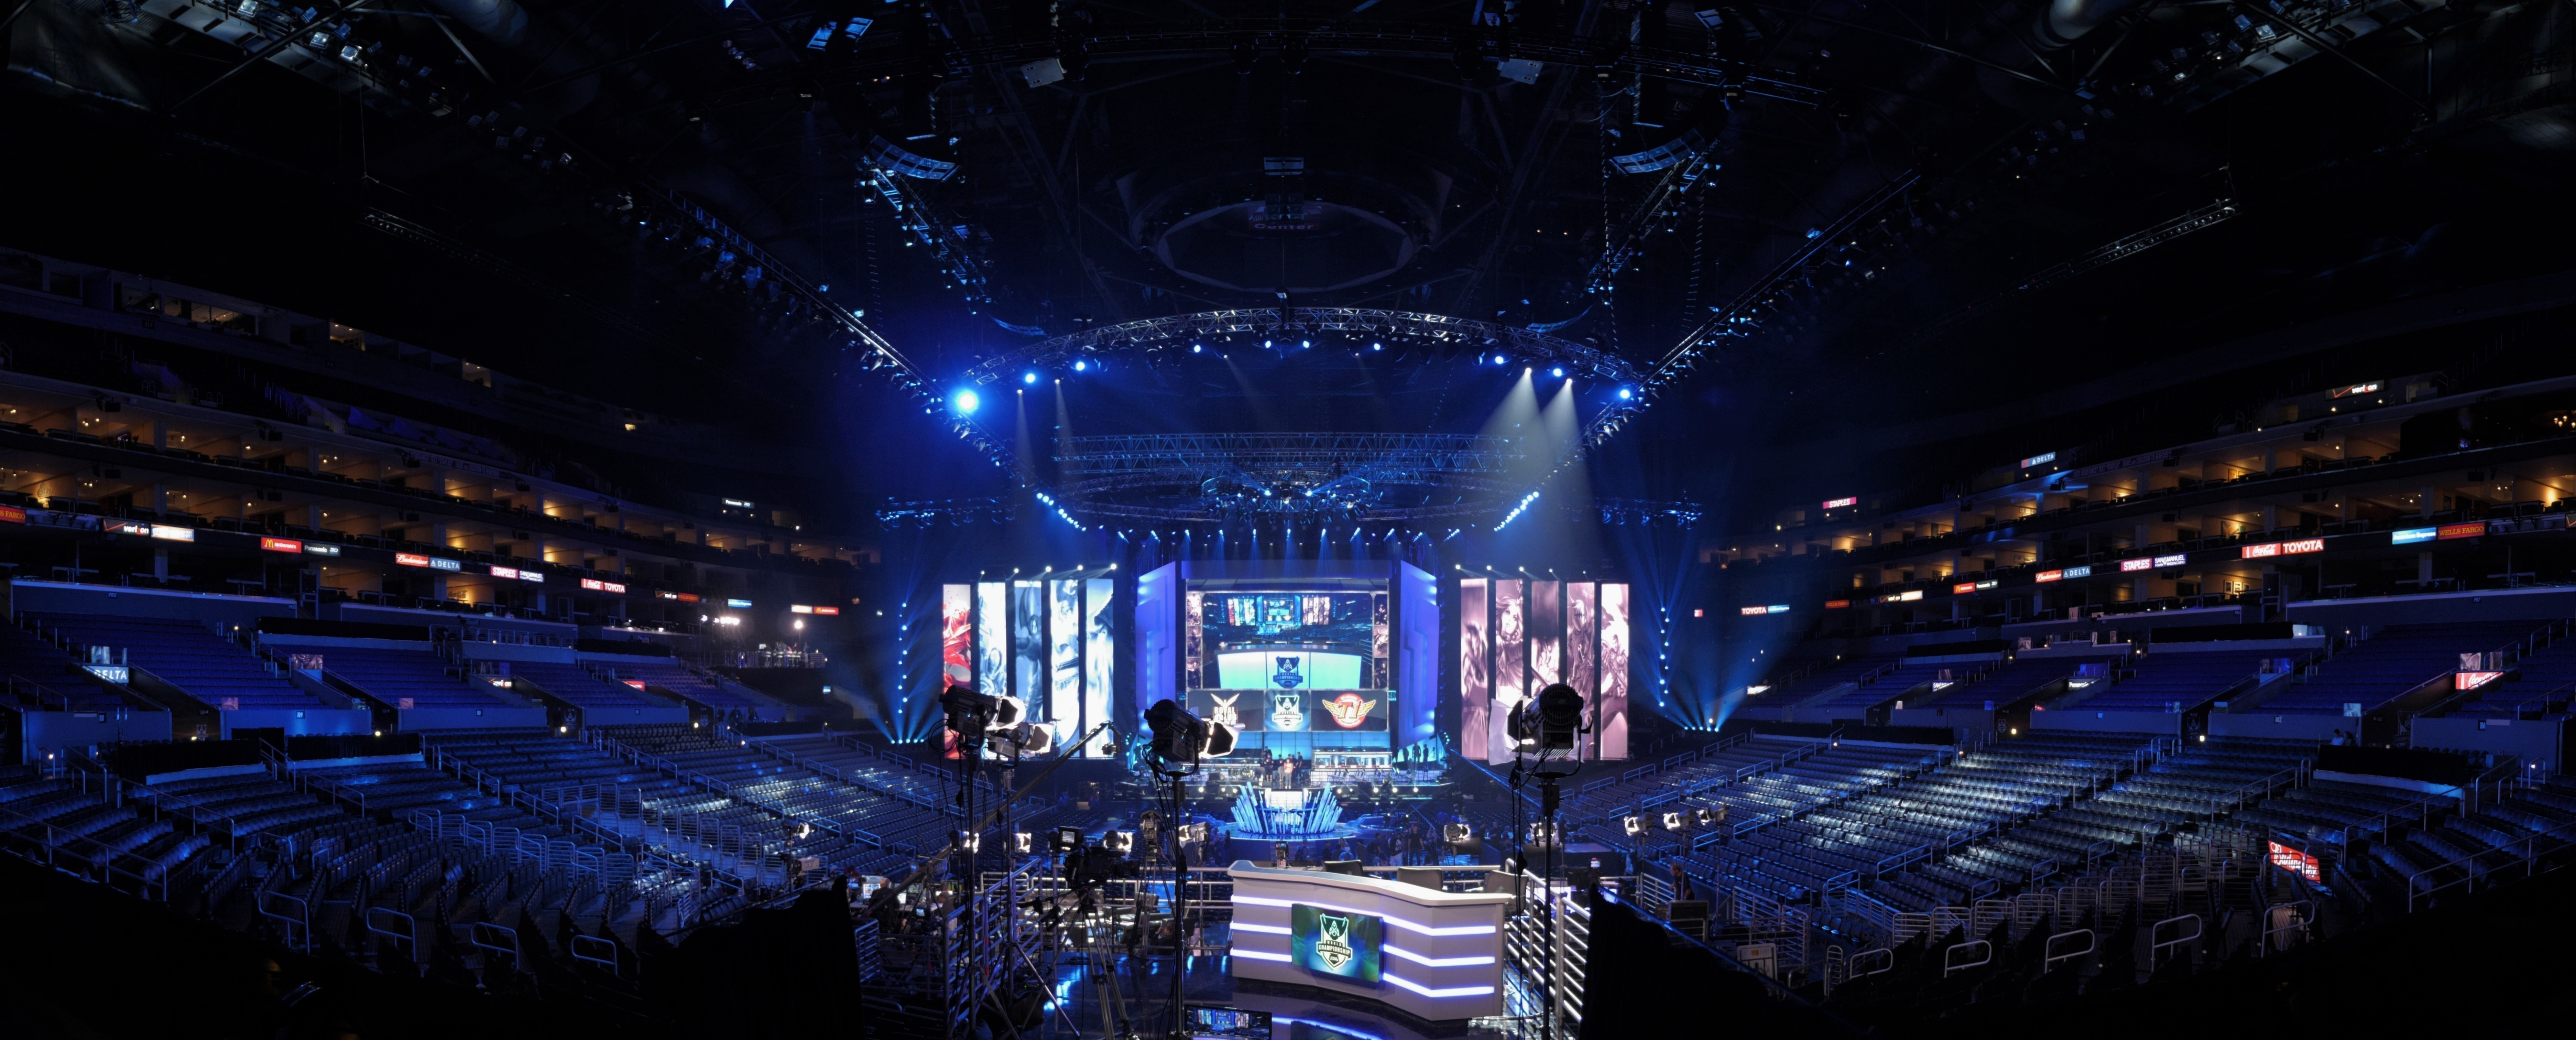 The season three League of Legends World Championship Grand final was held at the Staples Center in downtown Los Angeles on Oct. 4, 2013. (credit: Courtesy of artubr via Flickr Creative Commons)